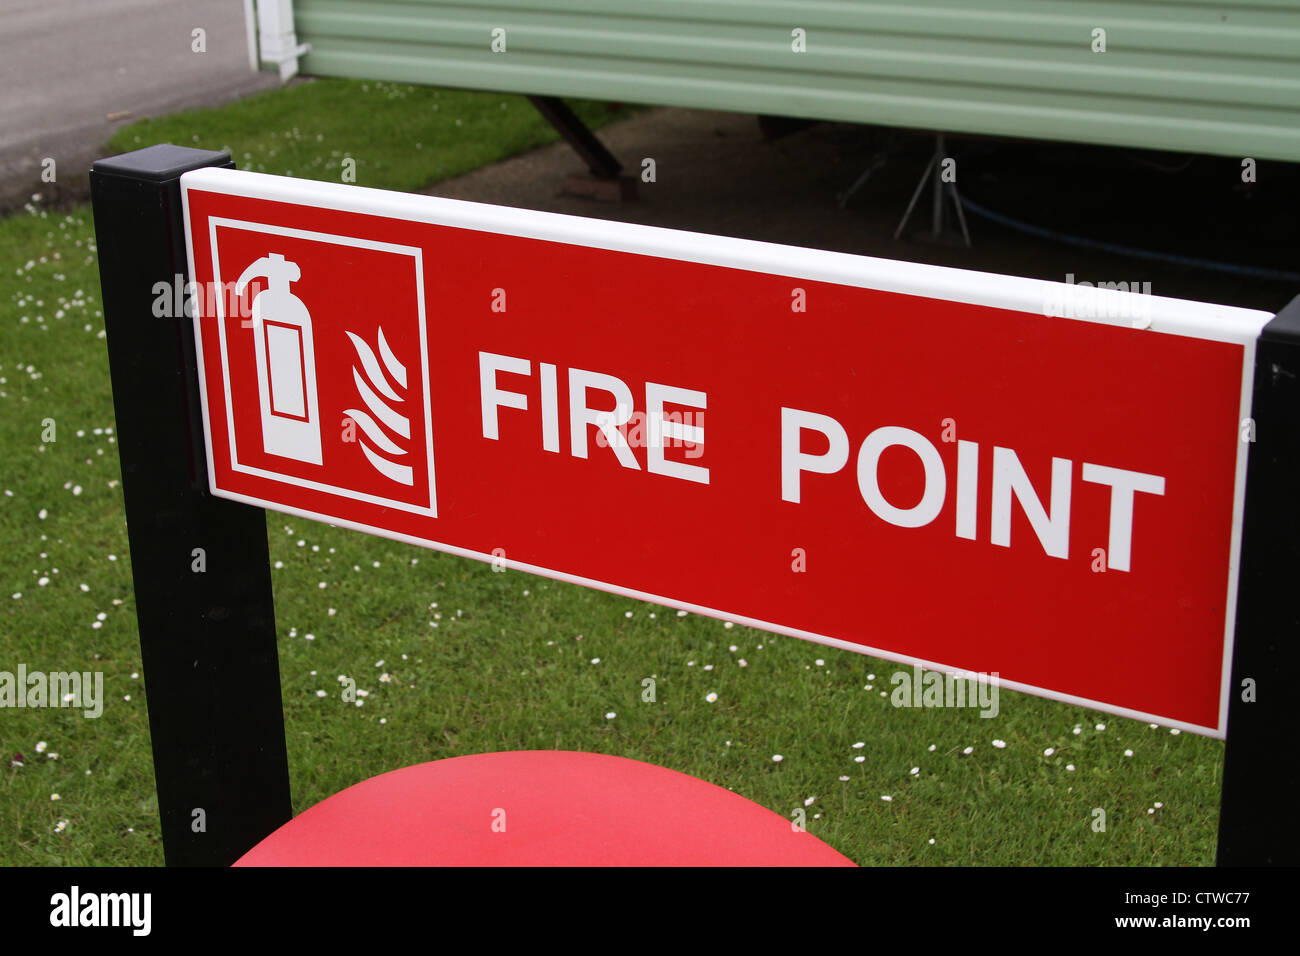 Fire point sign. - Stock Image